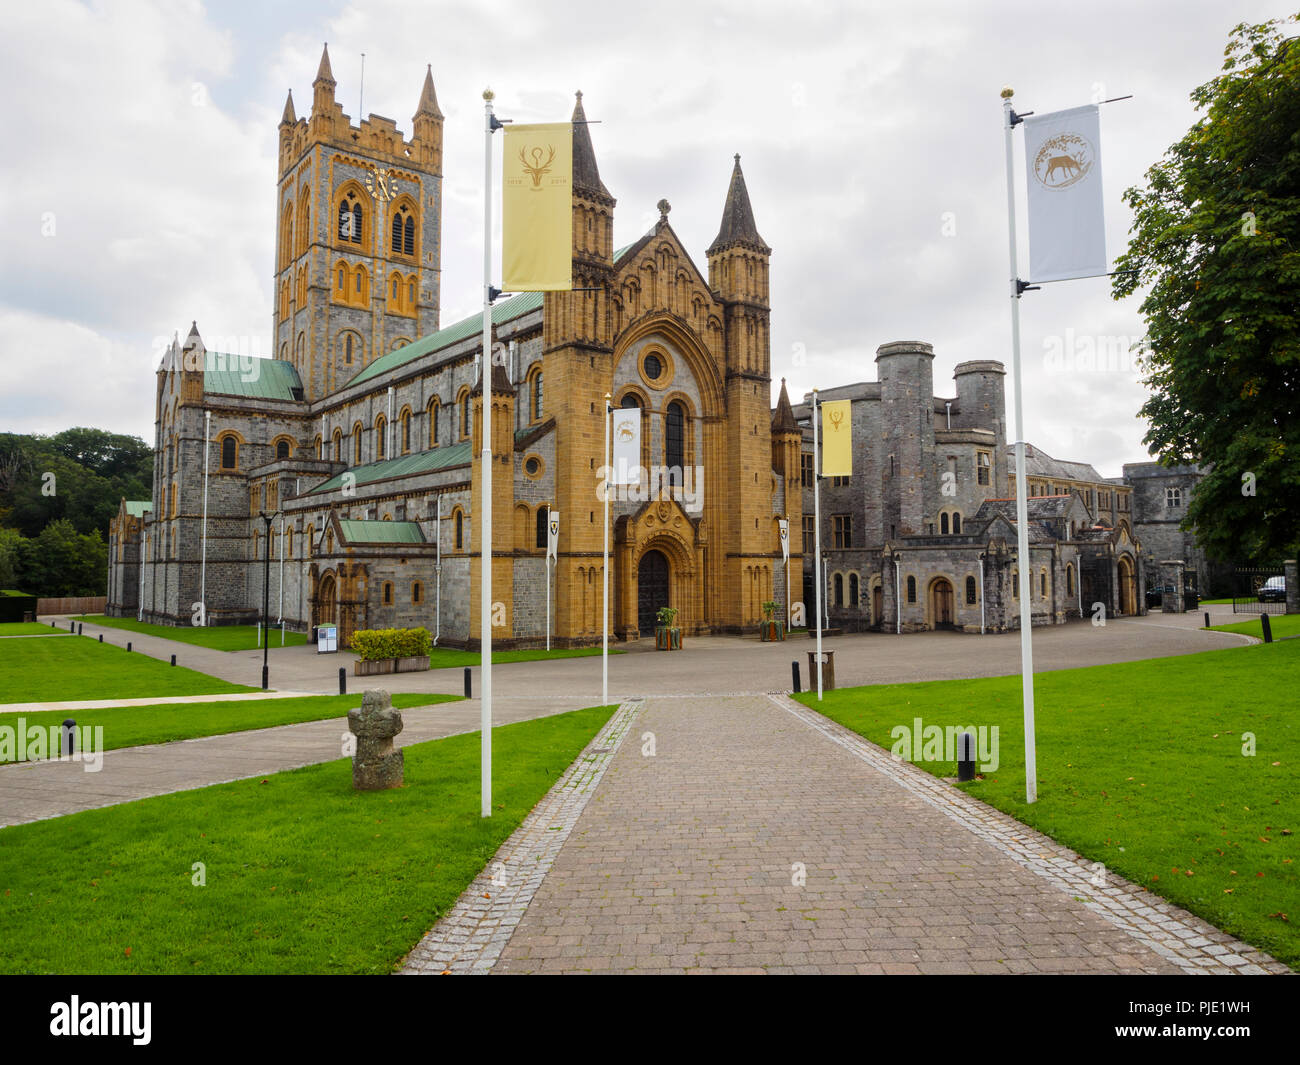 Benedictine Buckfast Abbey Church and monastery buildings frontal view - Stock Image